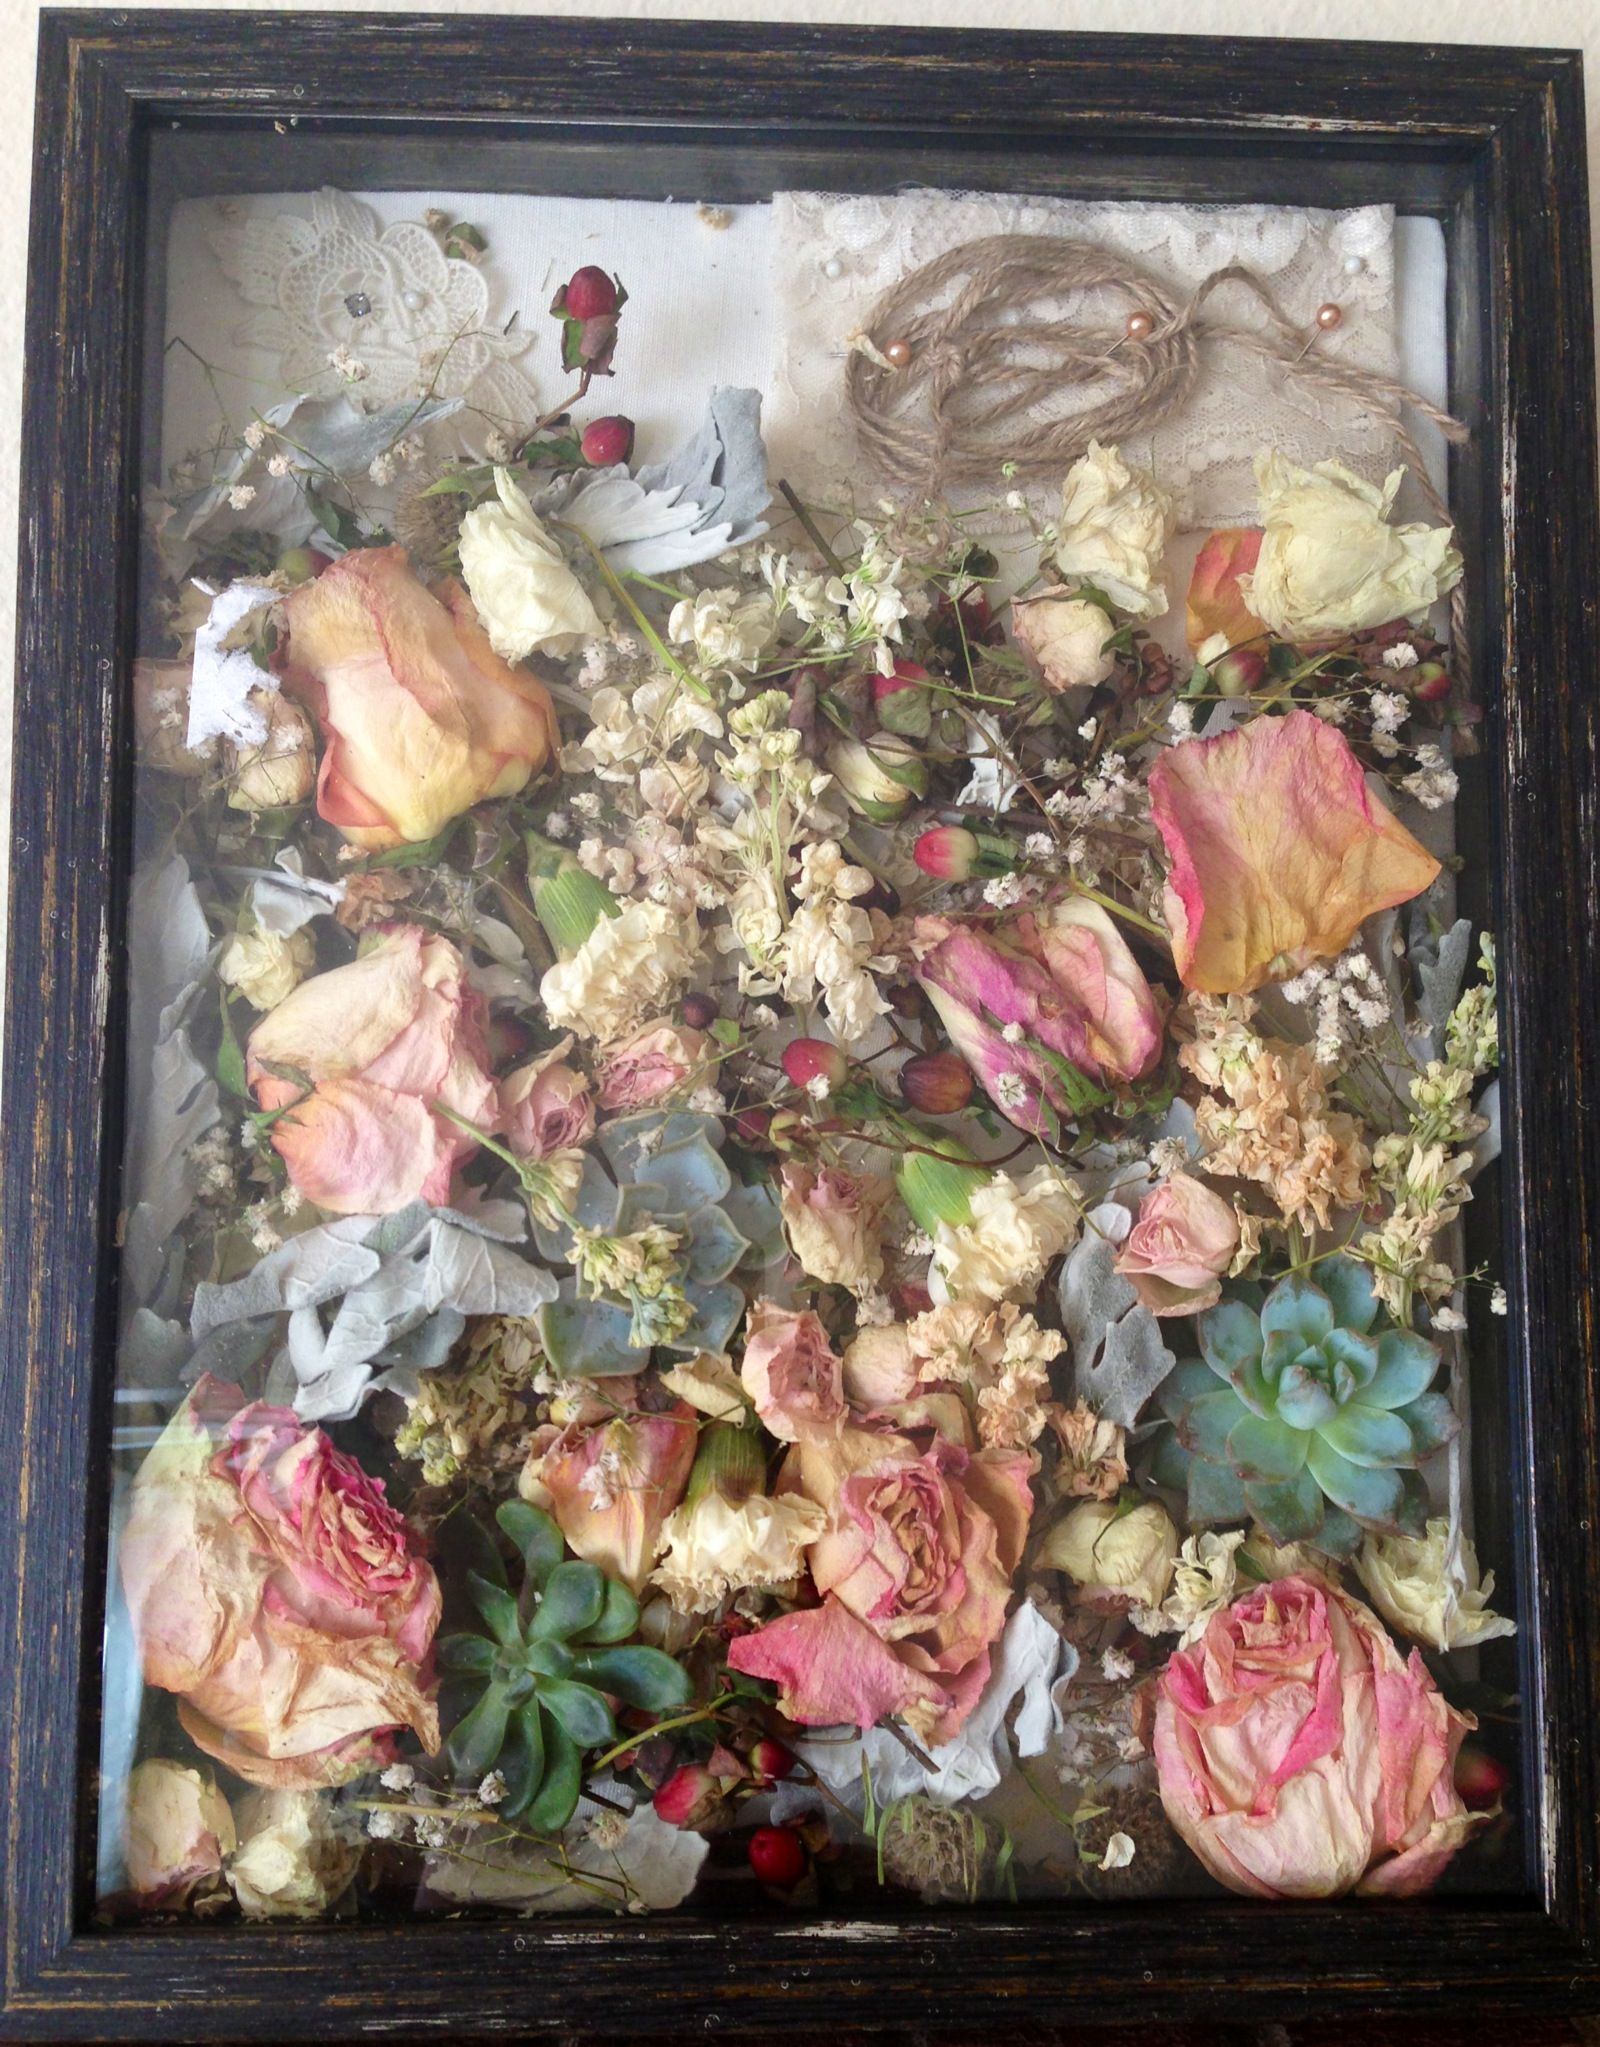 Dried out my wedding bouquet to keep the memory forever in this dried out my wedding bouquet to keep the memory forever in this shadow box frame so easy the frame isnt too deep so the flowers dont drop when you hang izmirmasajfo